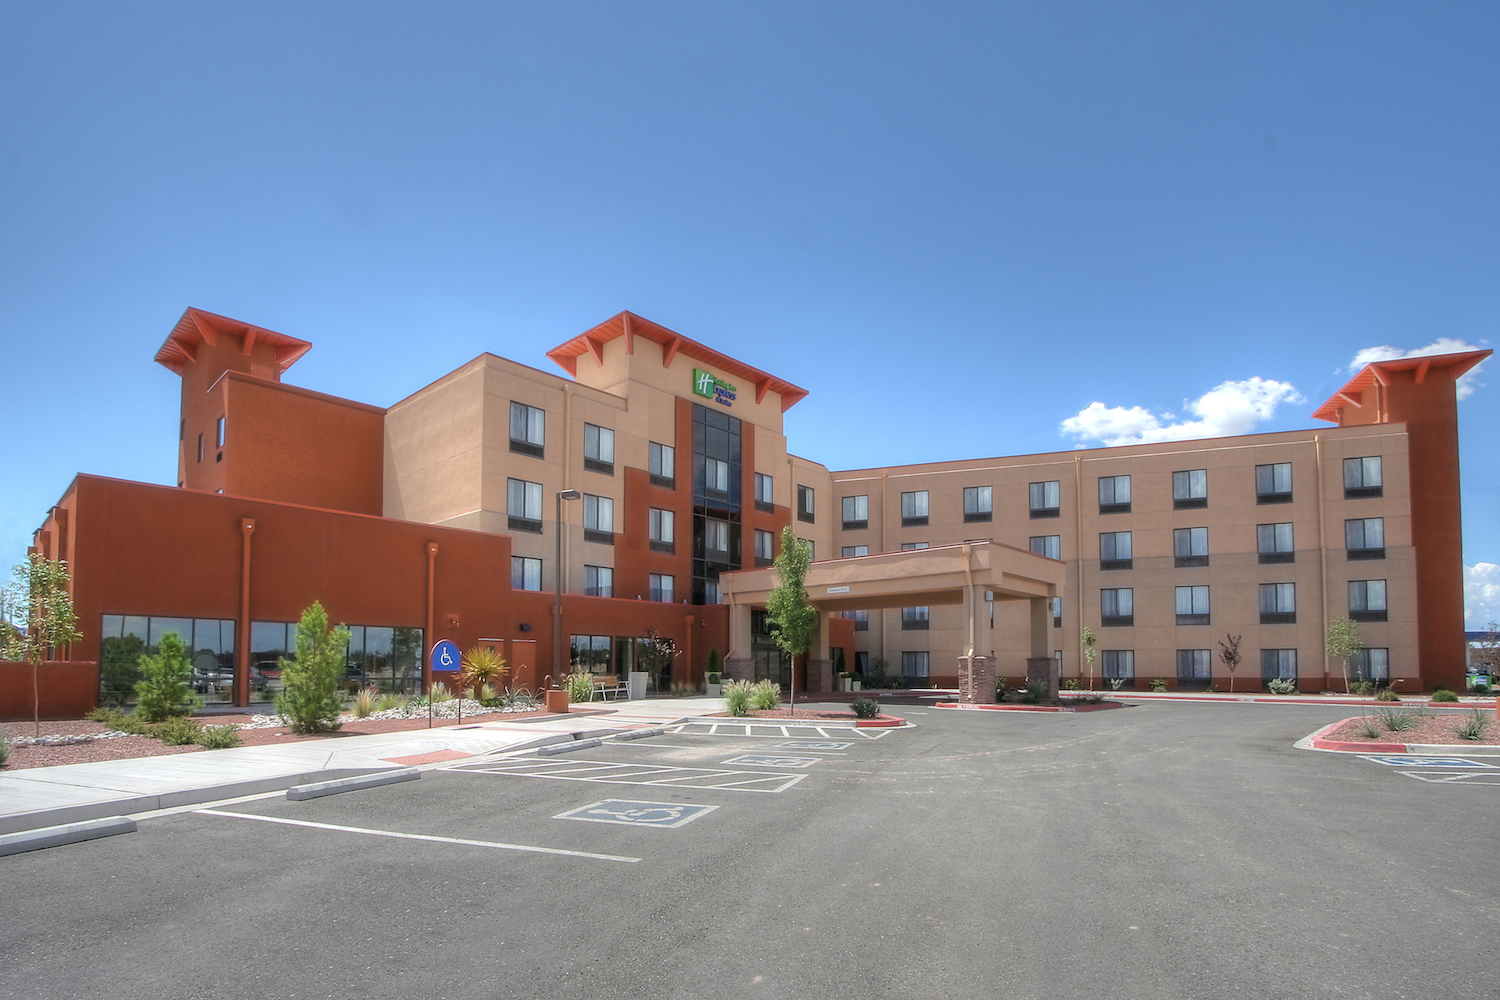 Abqww hexs hotel front day